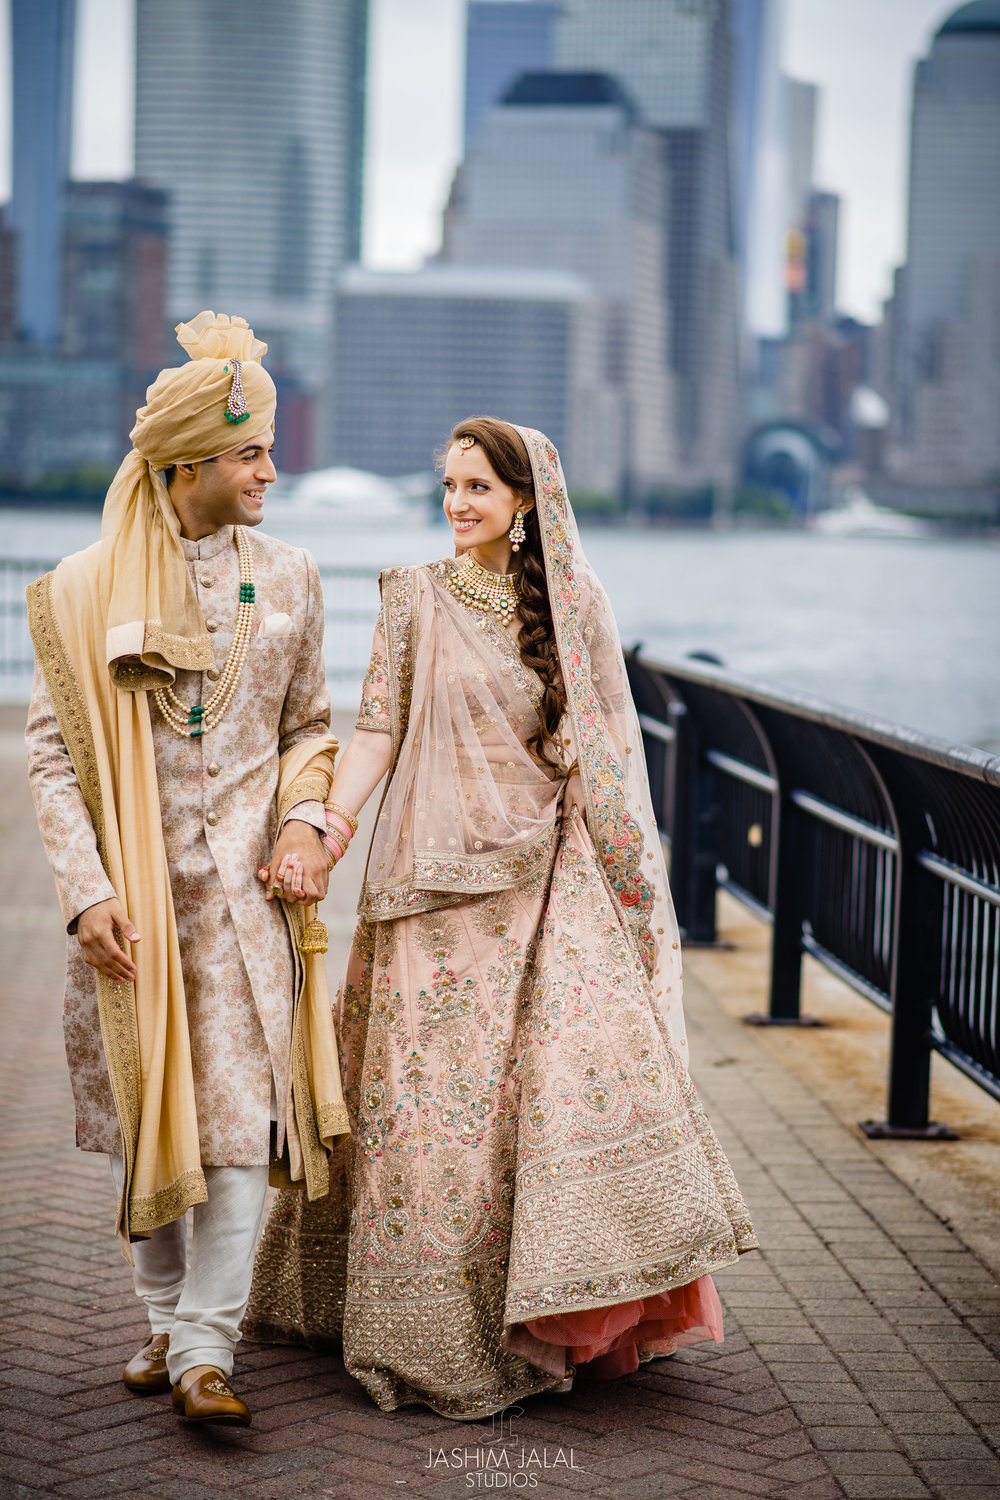 INDIAN WEDDING BRIDE AND GROOM WALKING.jpg